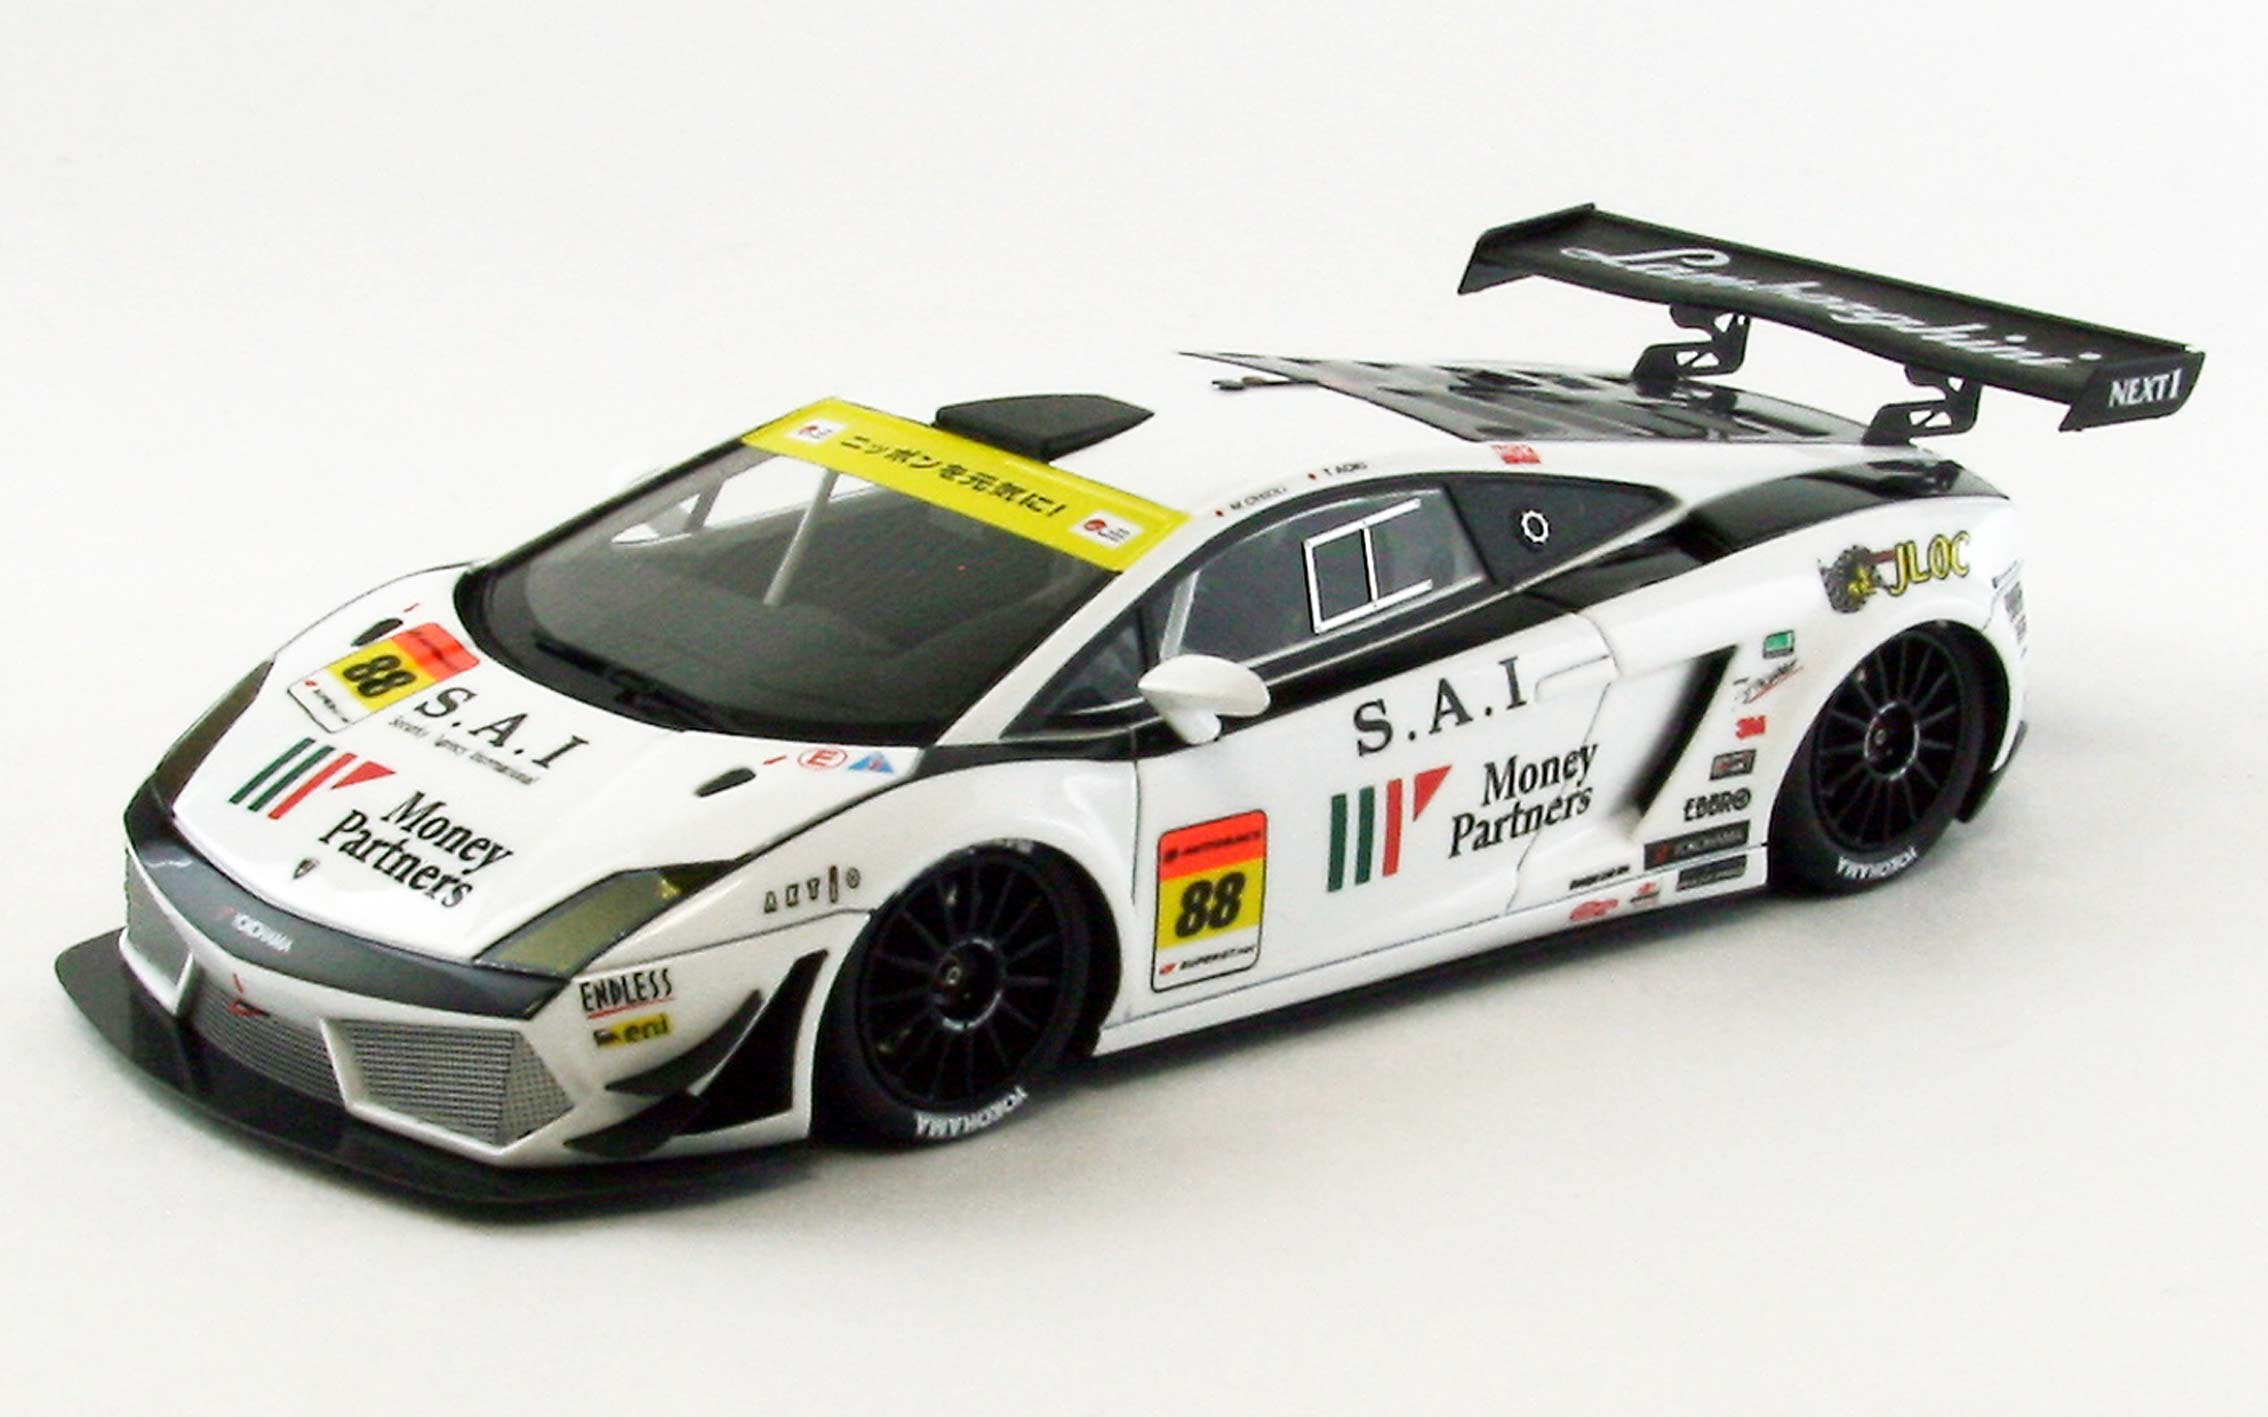 【44956】【MAKE UP】MonePa LAMBORGHINI GT3 SUPER GT300 2012 No. 88 【RESIN】